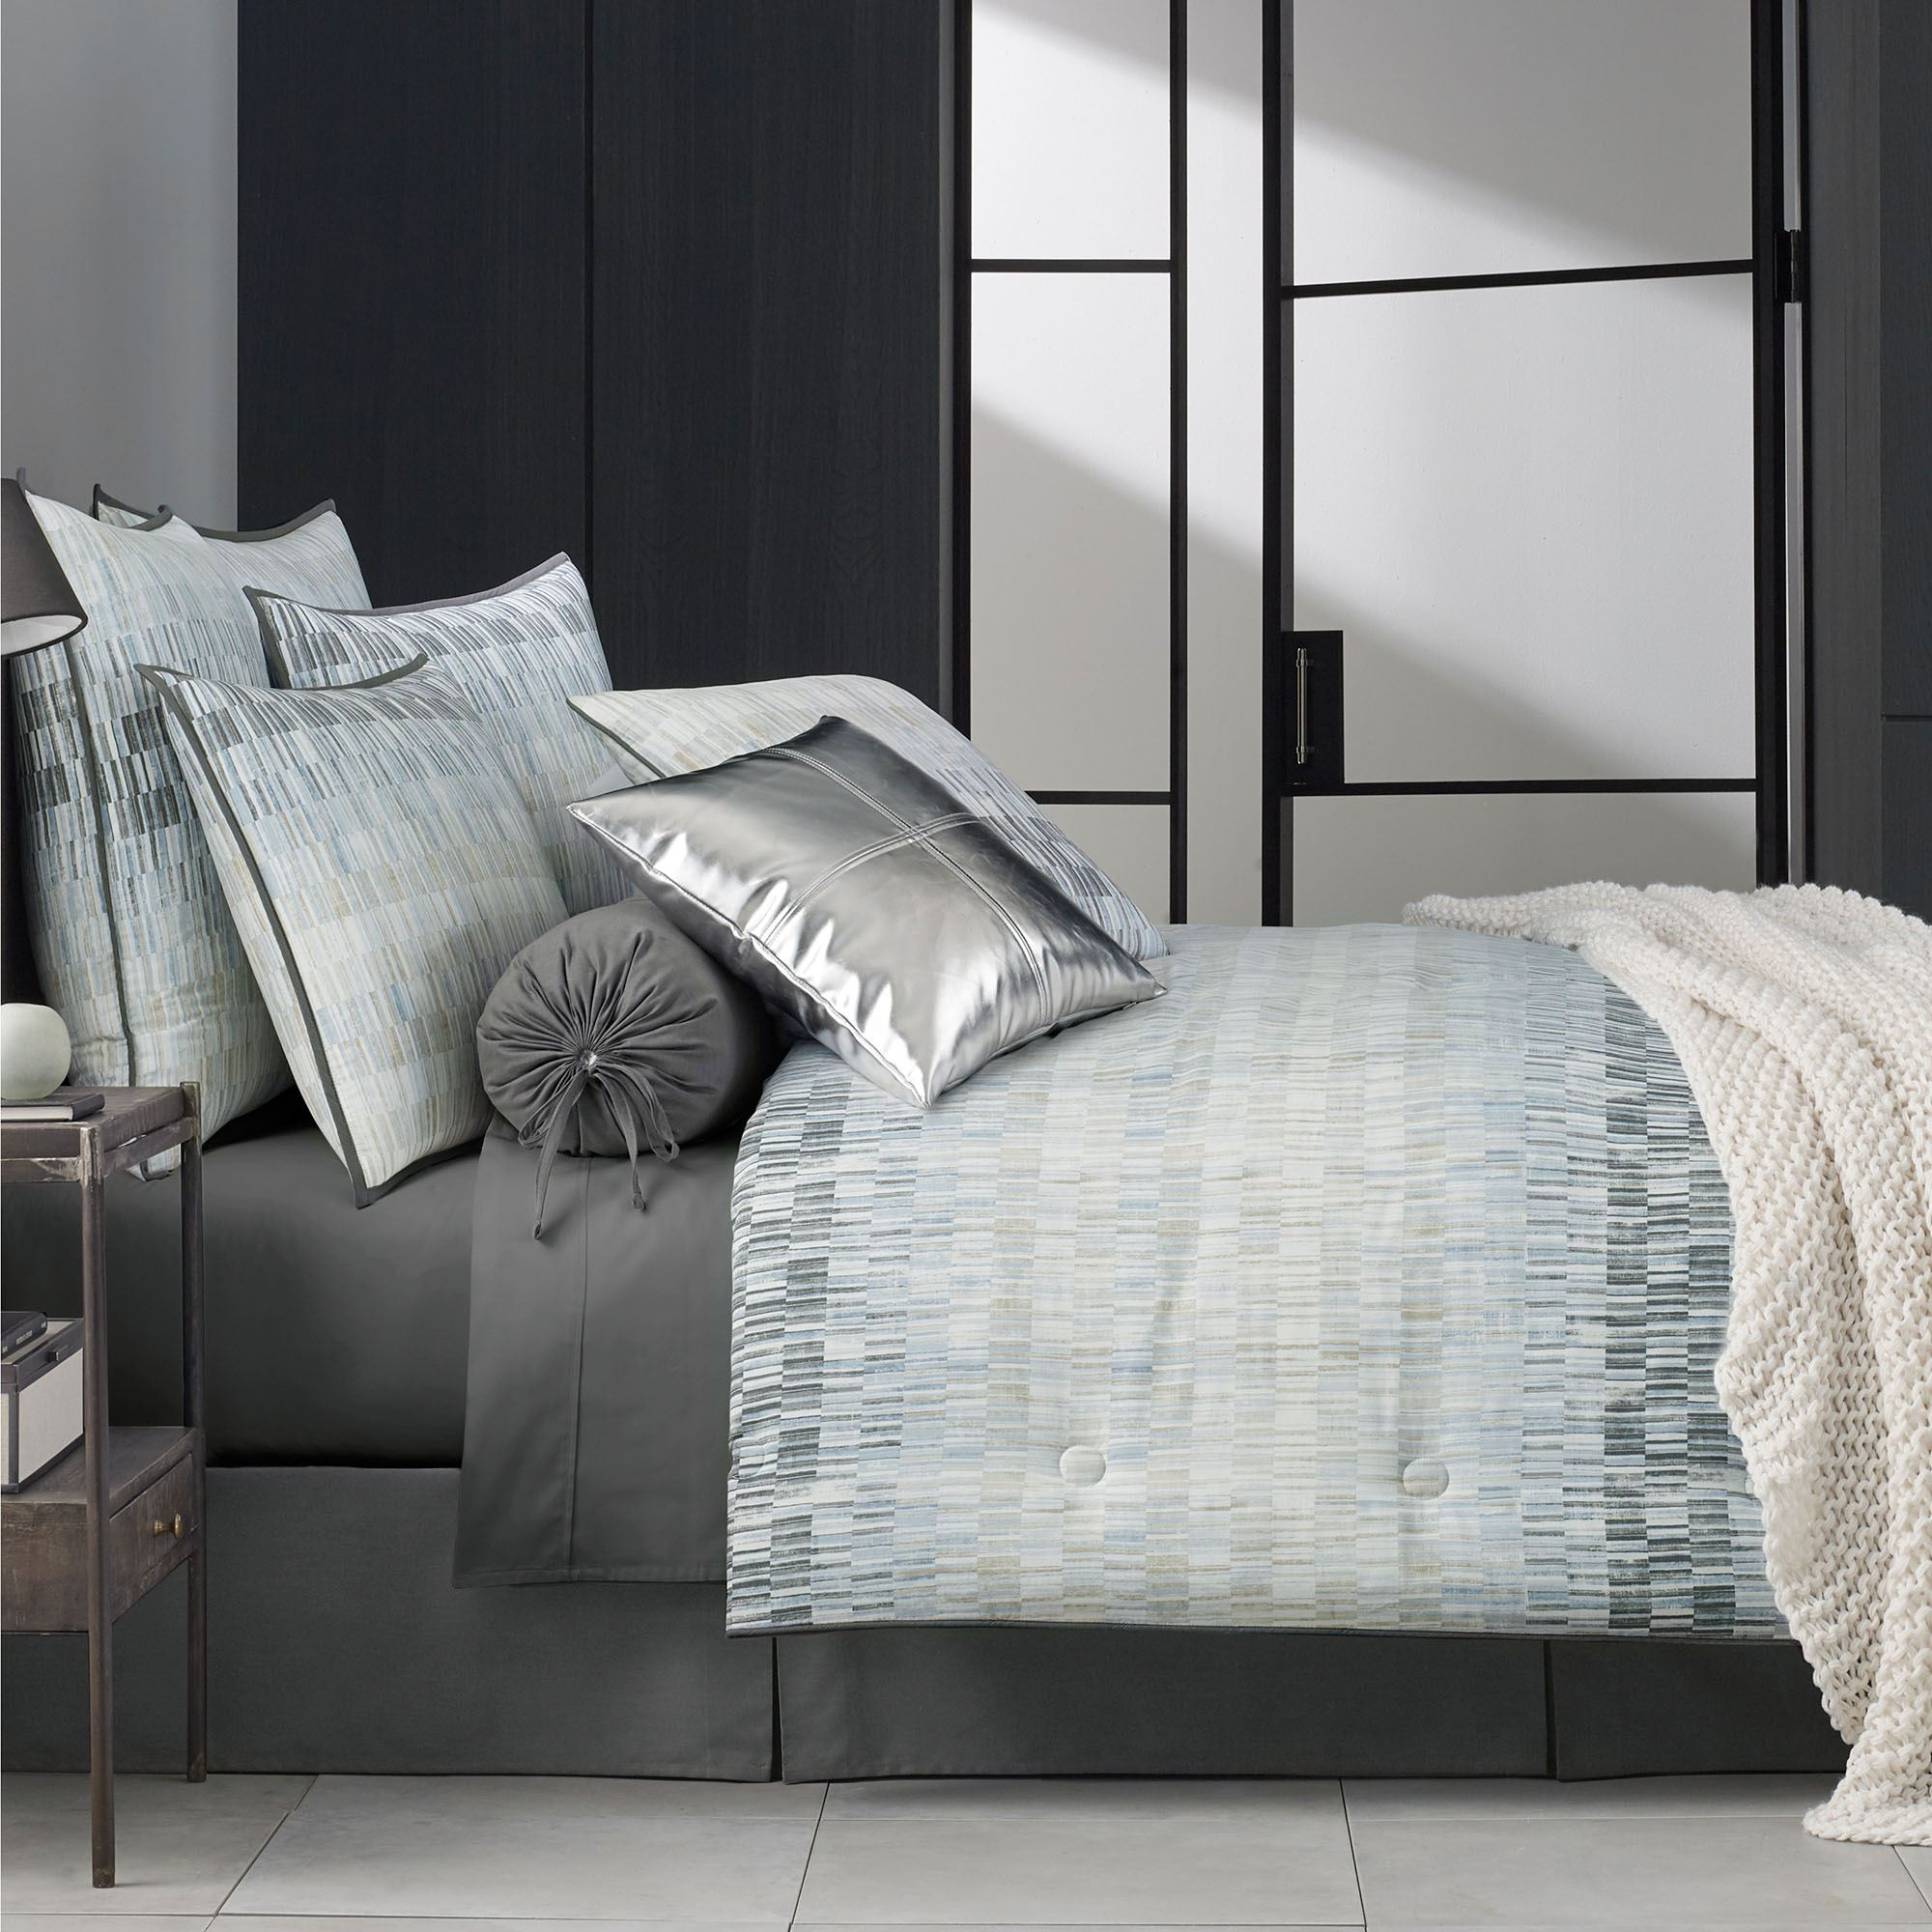 Flatiron Abstract Comforter Bedding By Oscar Oliver New York City